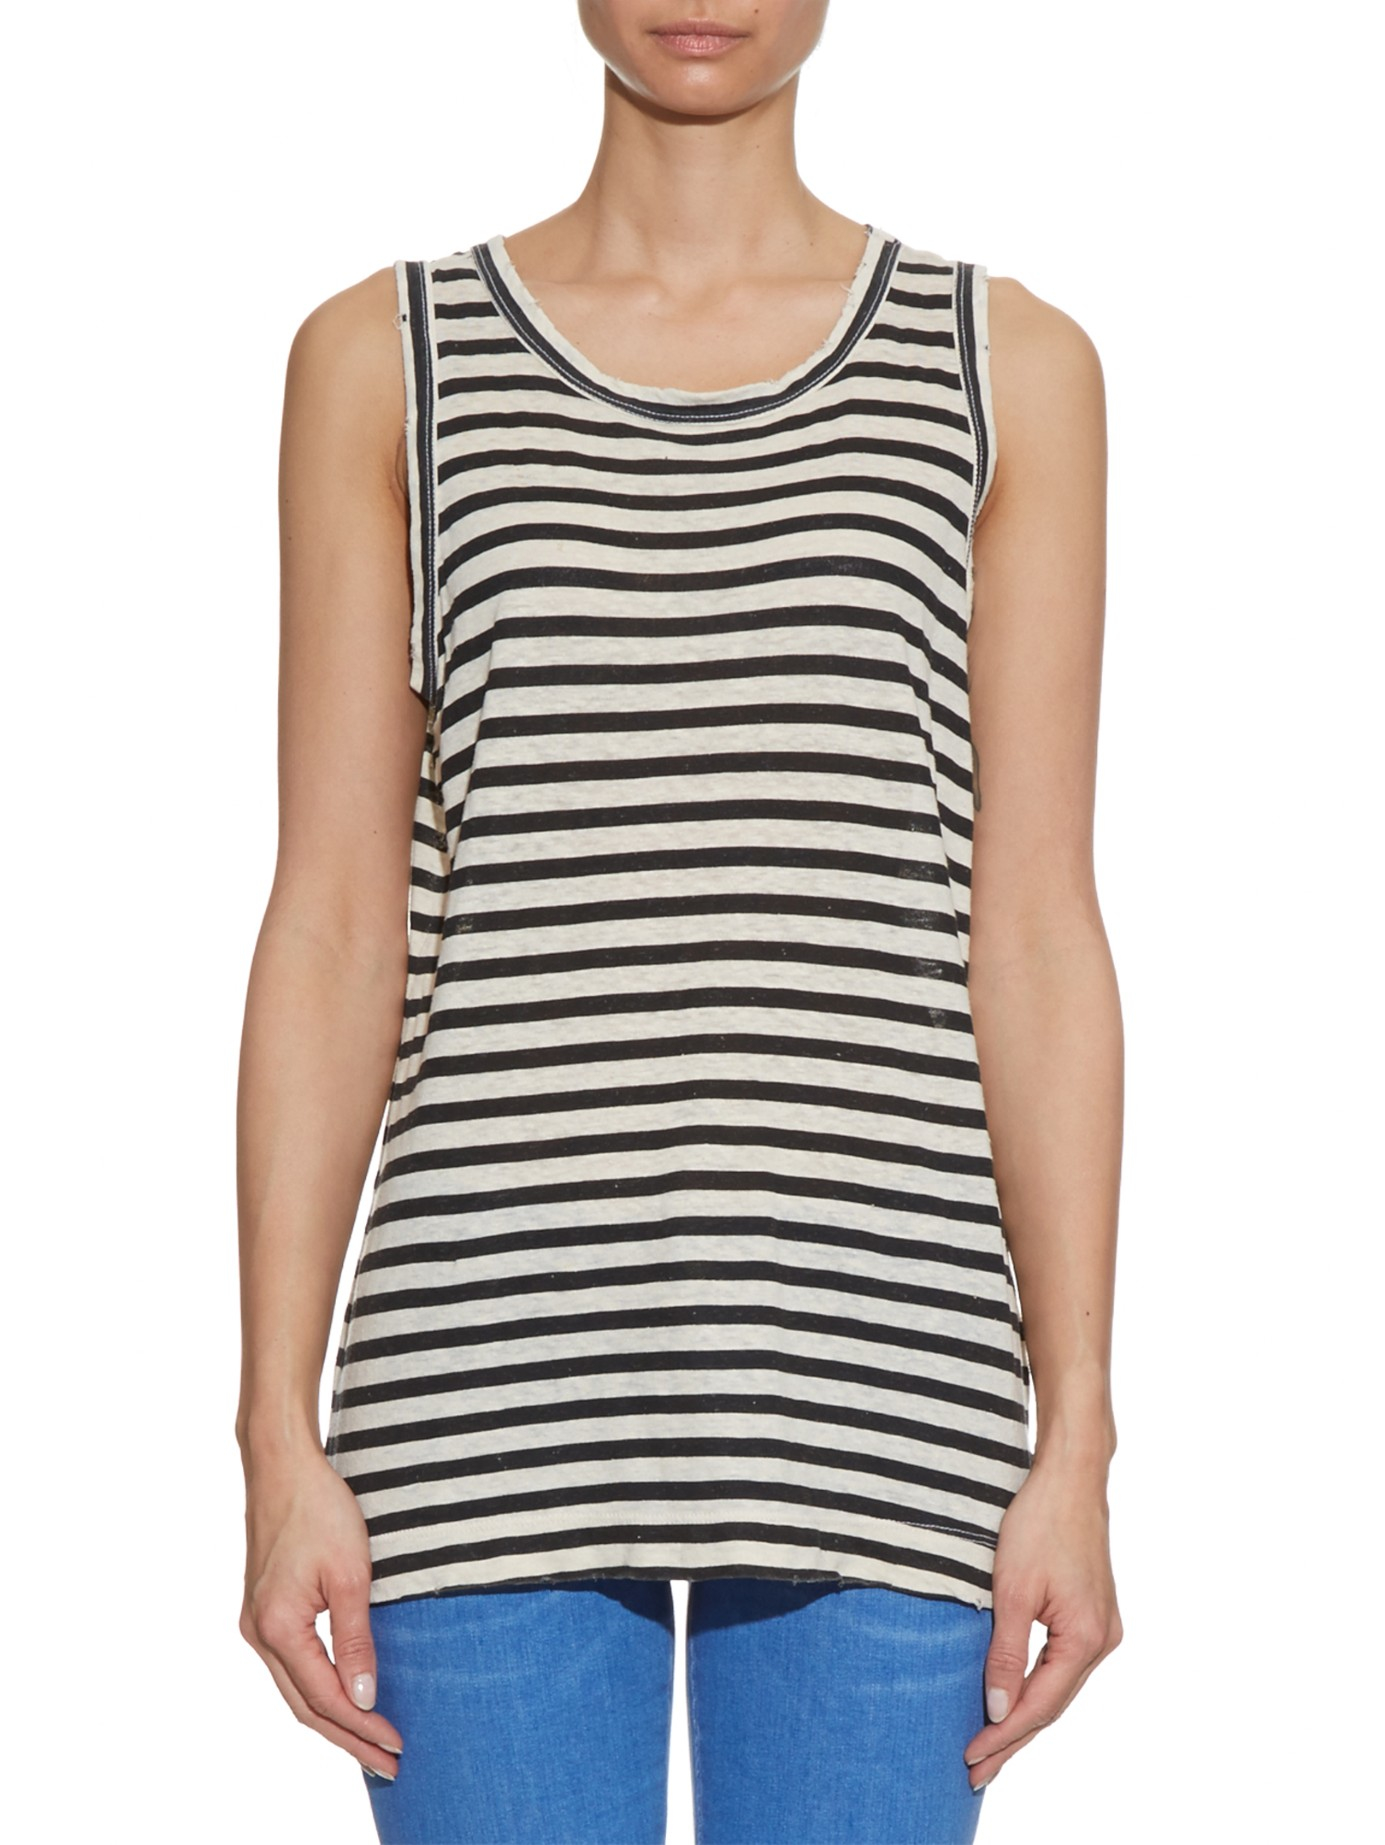 Inexpensive Sale Online Current/elliott Woman The Muscle Striped Cotton And Modal-blend Tank Brick Size 3 Current Elliott Buy Cheap 2018 Unisex sd464P52XQ